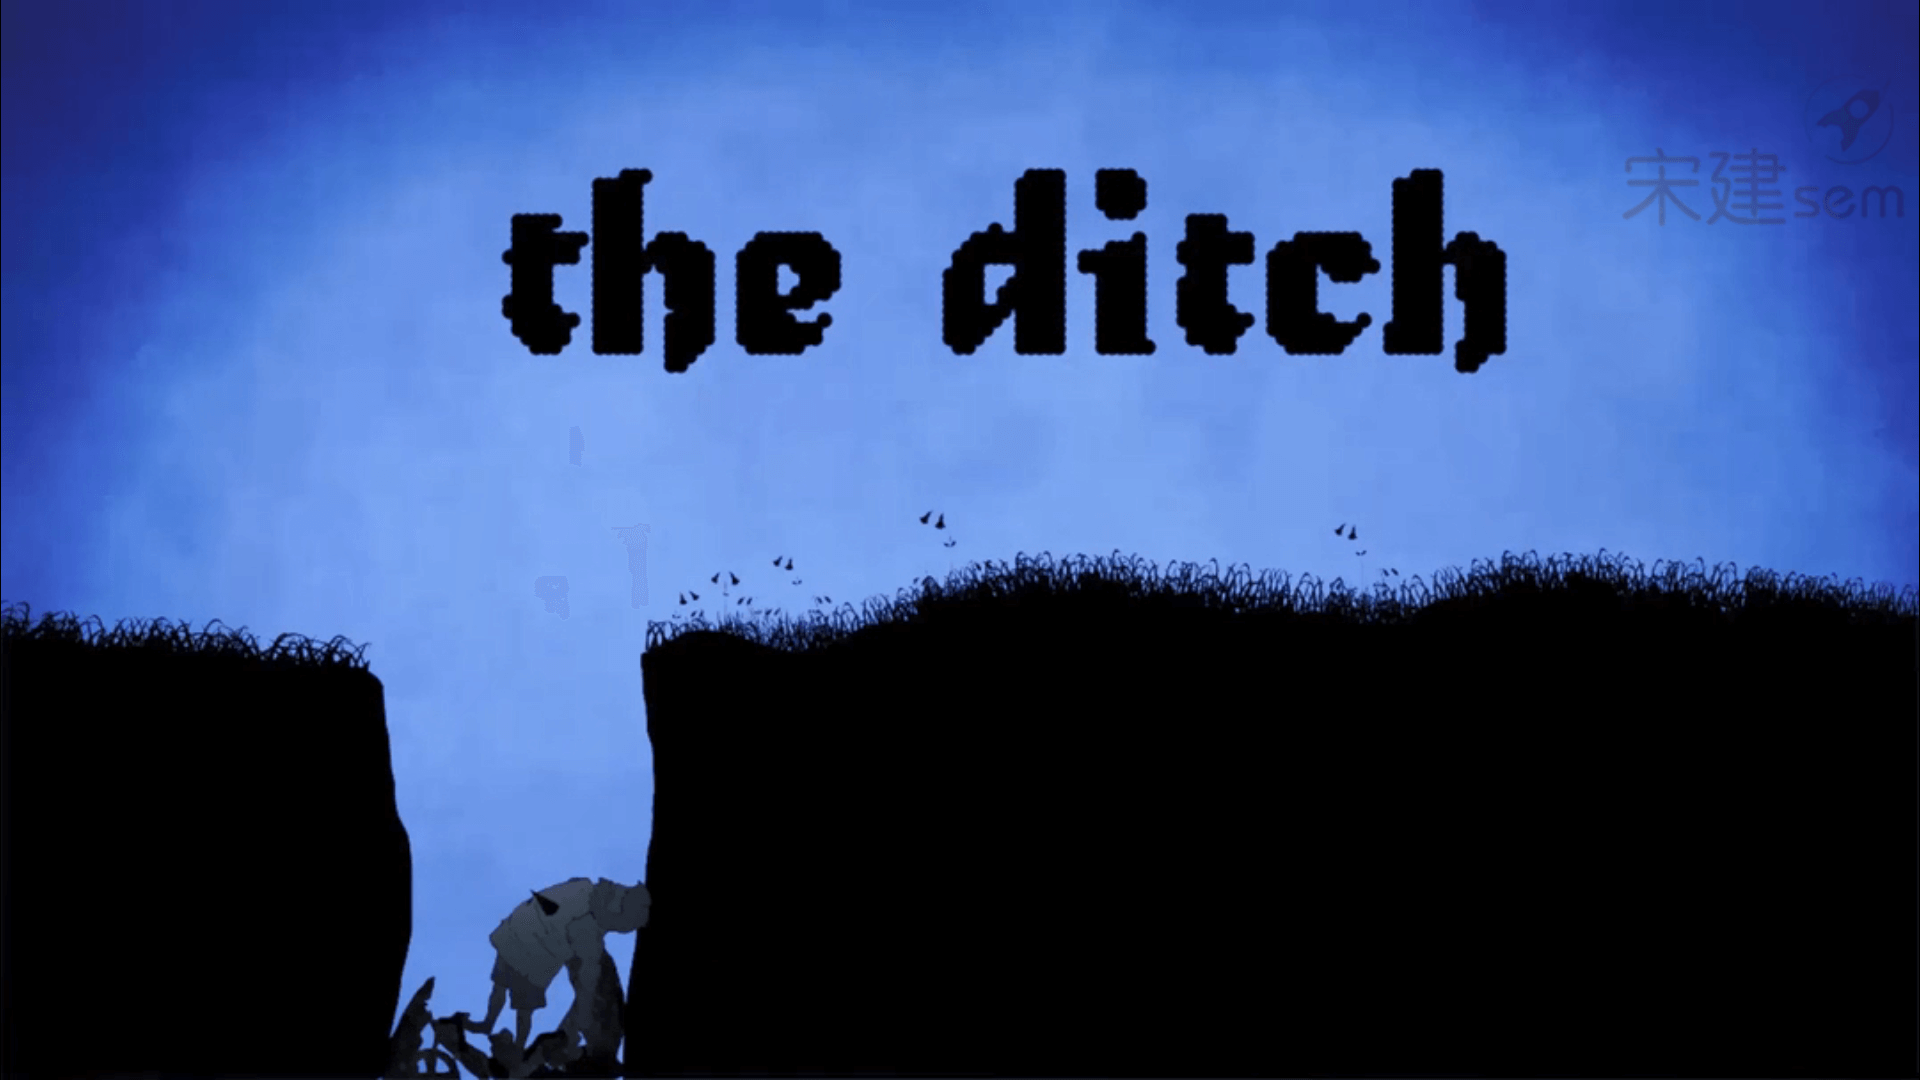 the-ditch《深坑》动画短片